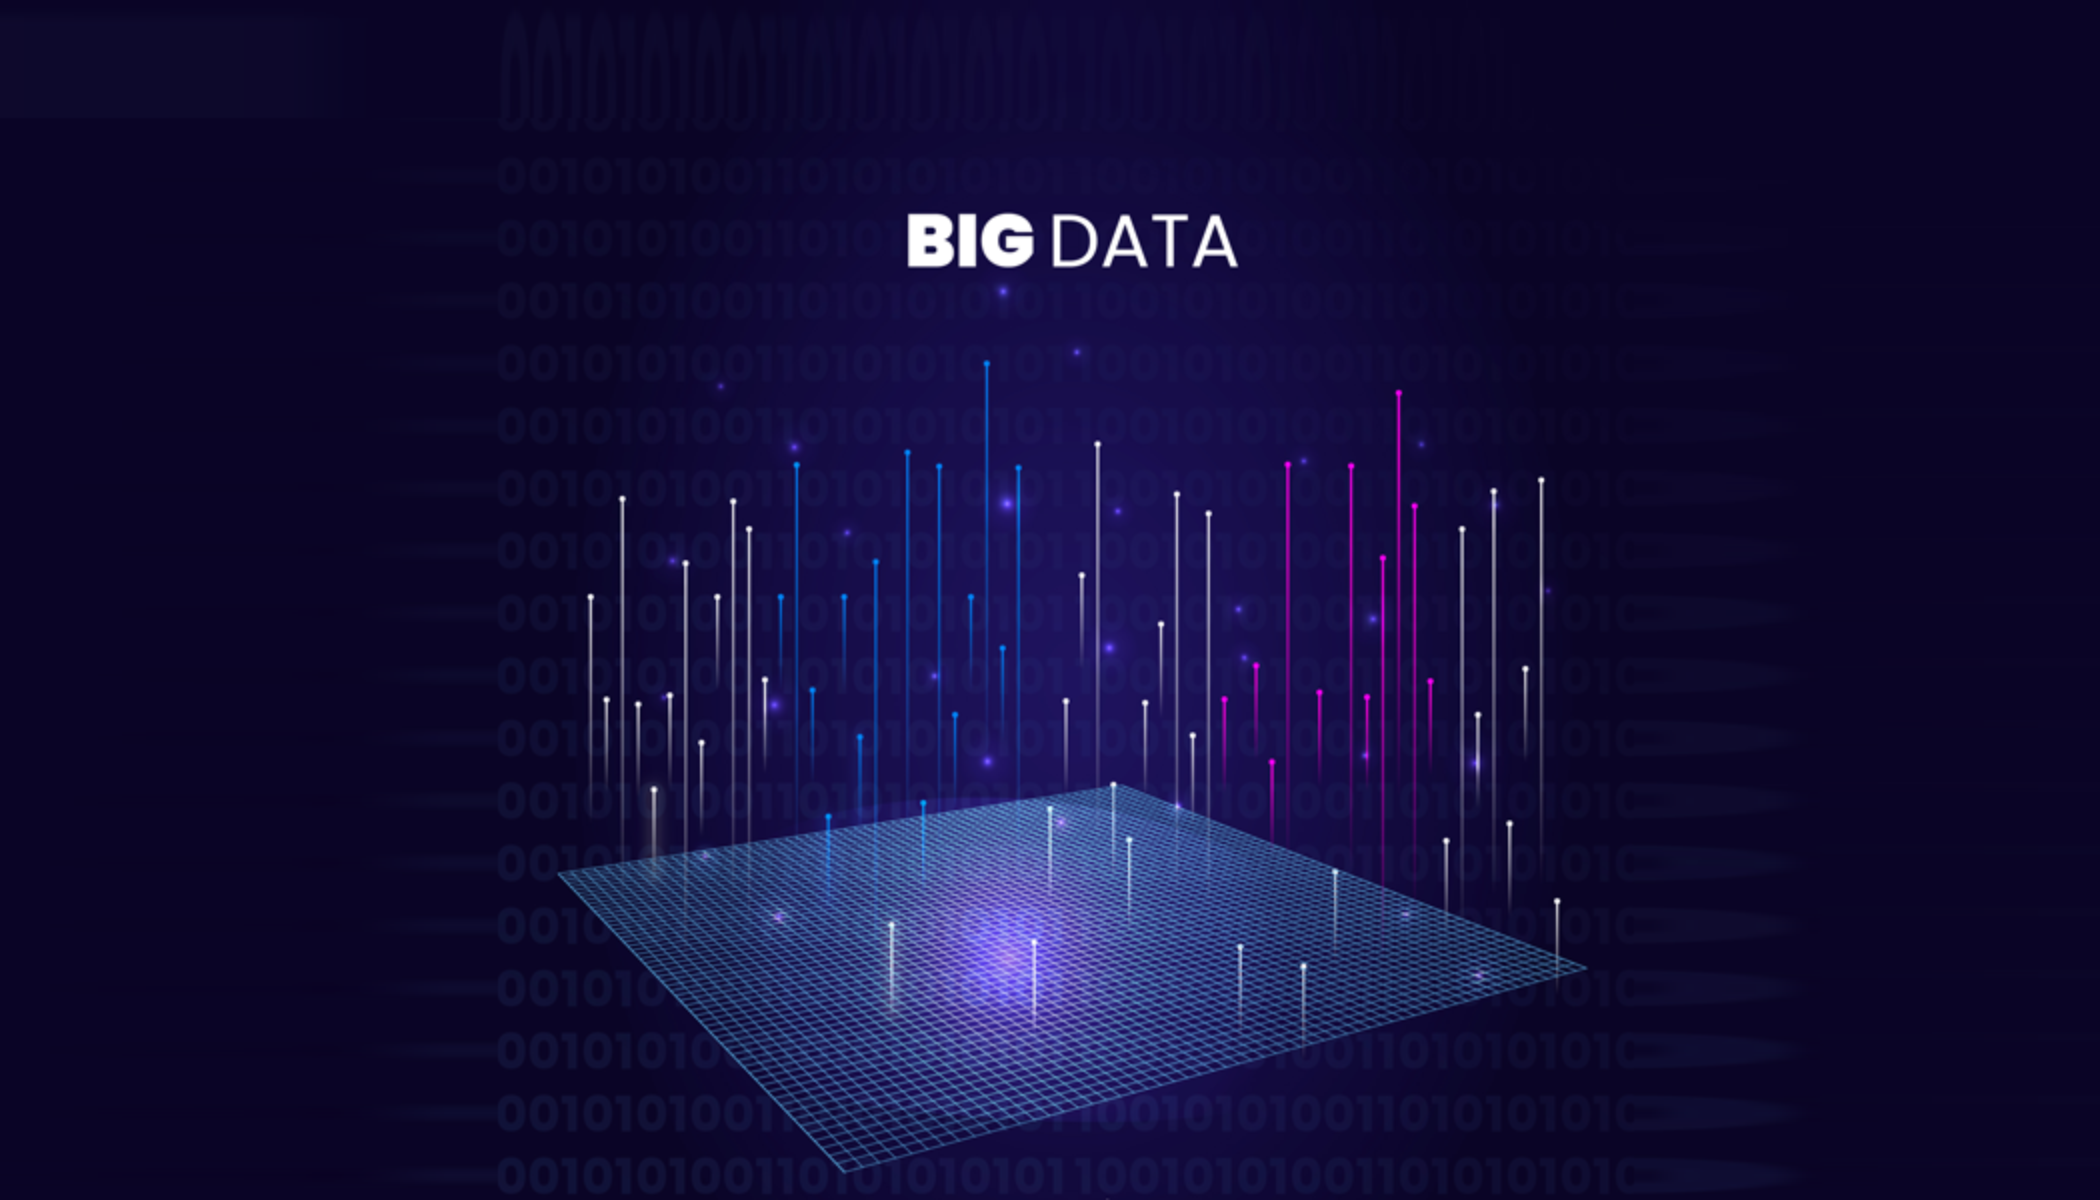 Big Data News and Trends | Big Data Market Research and